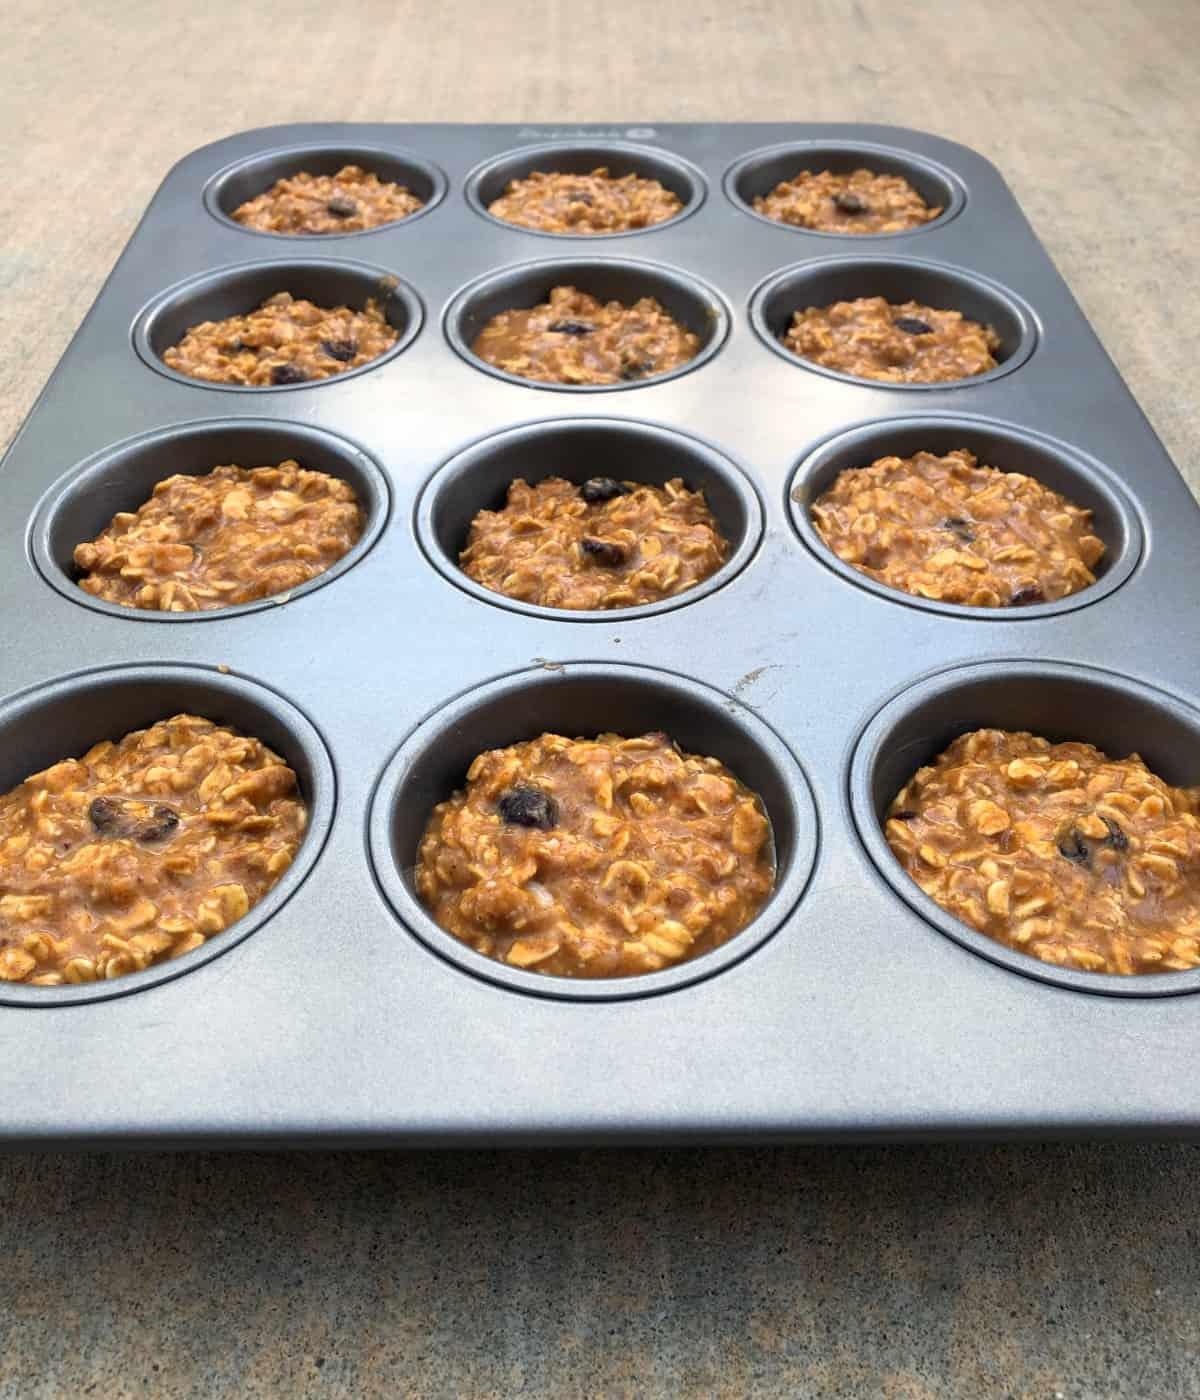 Unbaked pumpkin oatmeal muffin cups with dried cranberries in muffin pan.